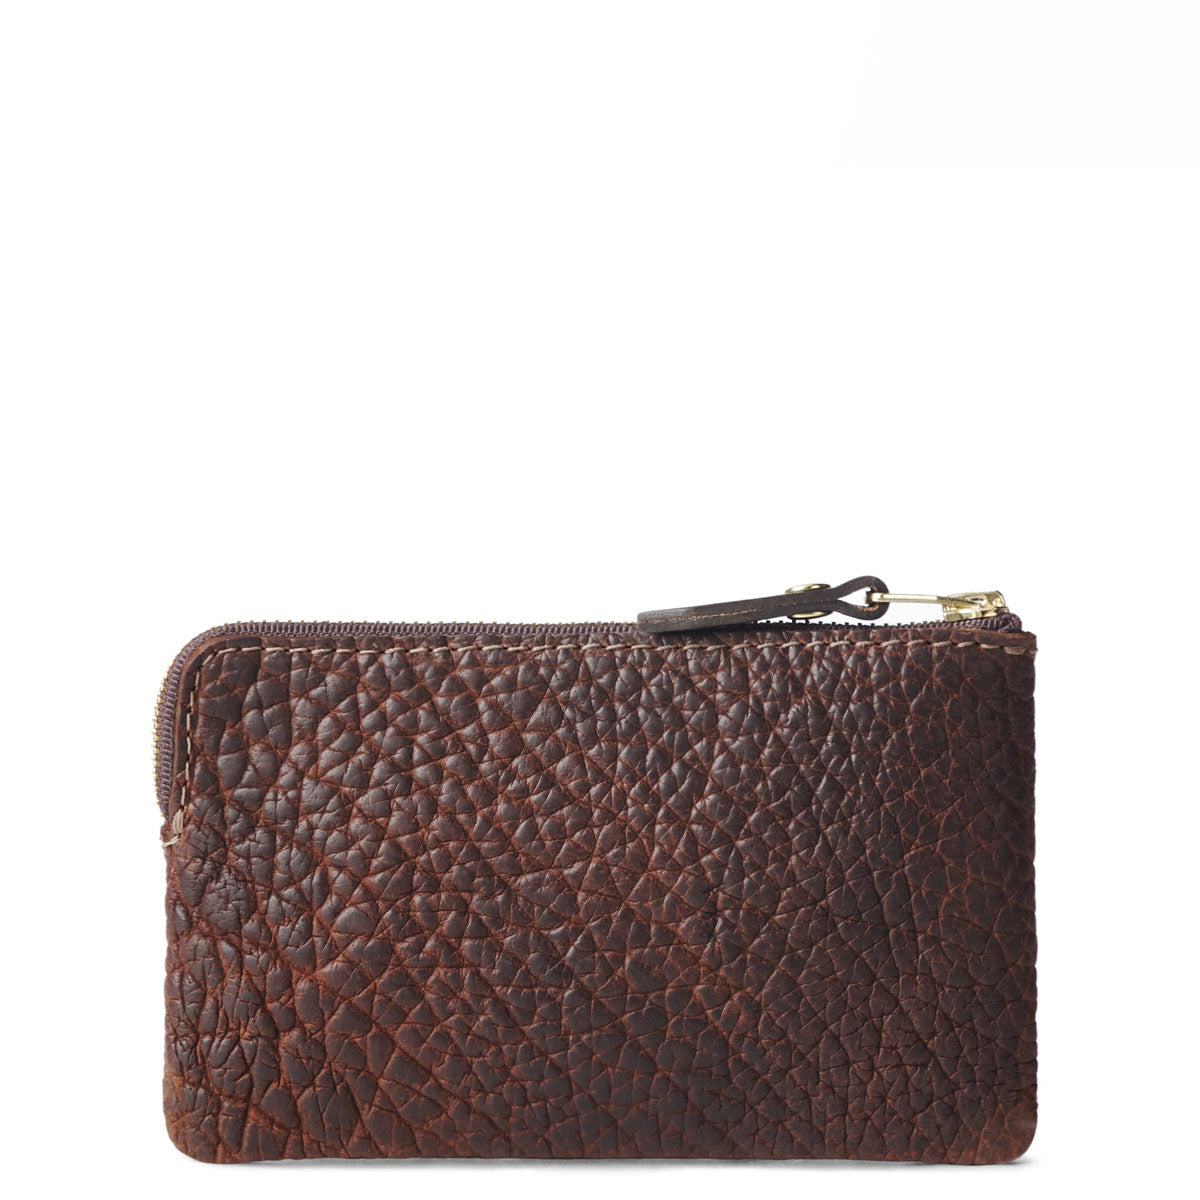 Bison Small Pouch (Brown)  #605